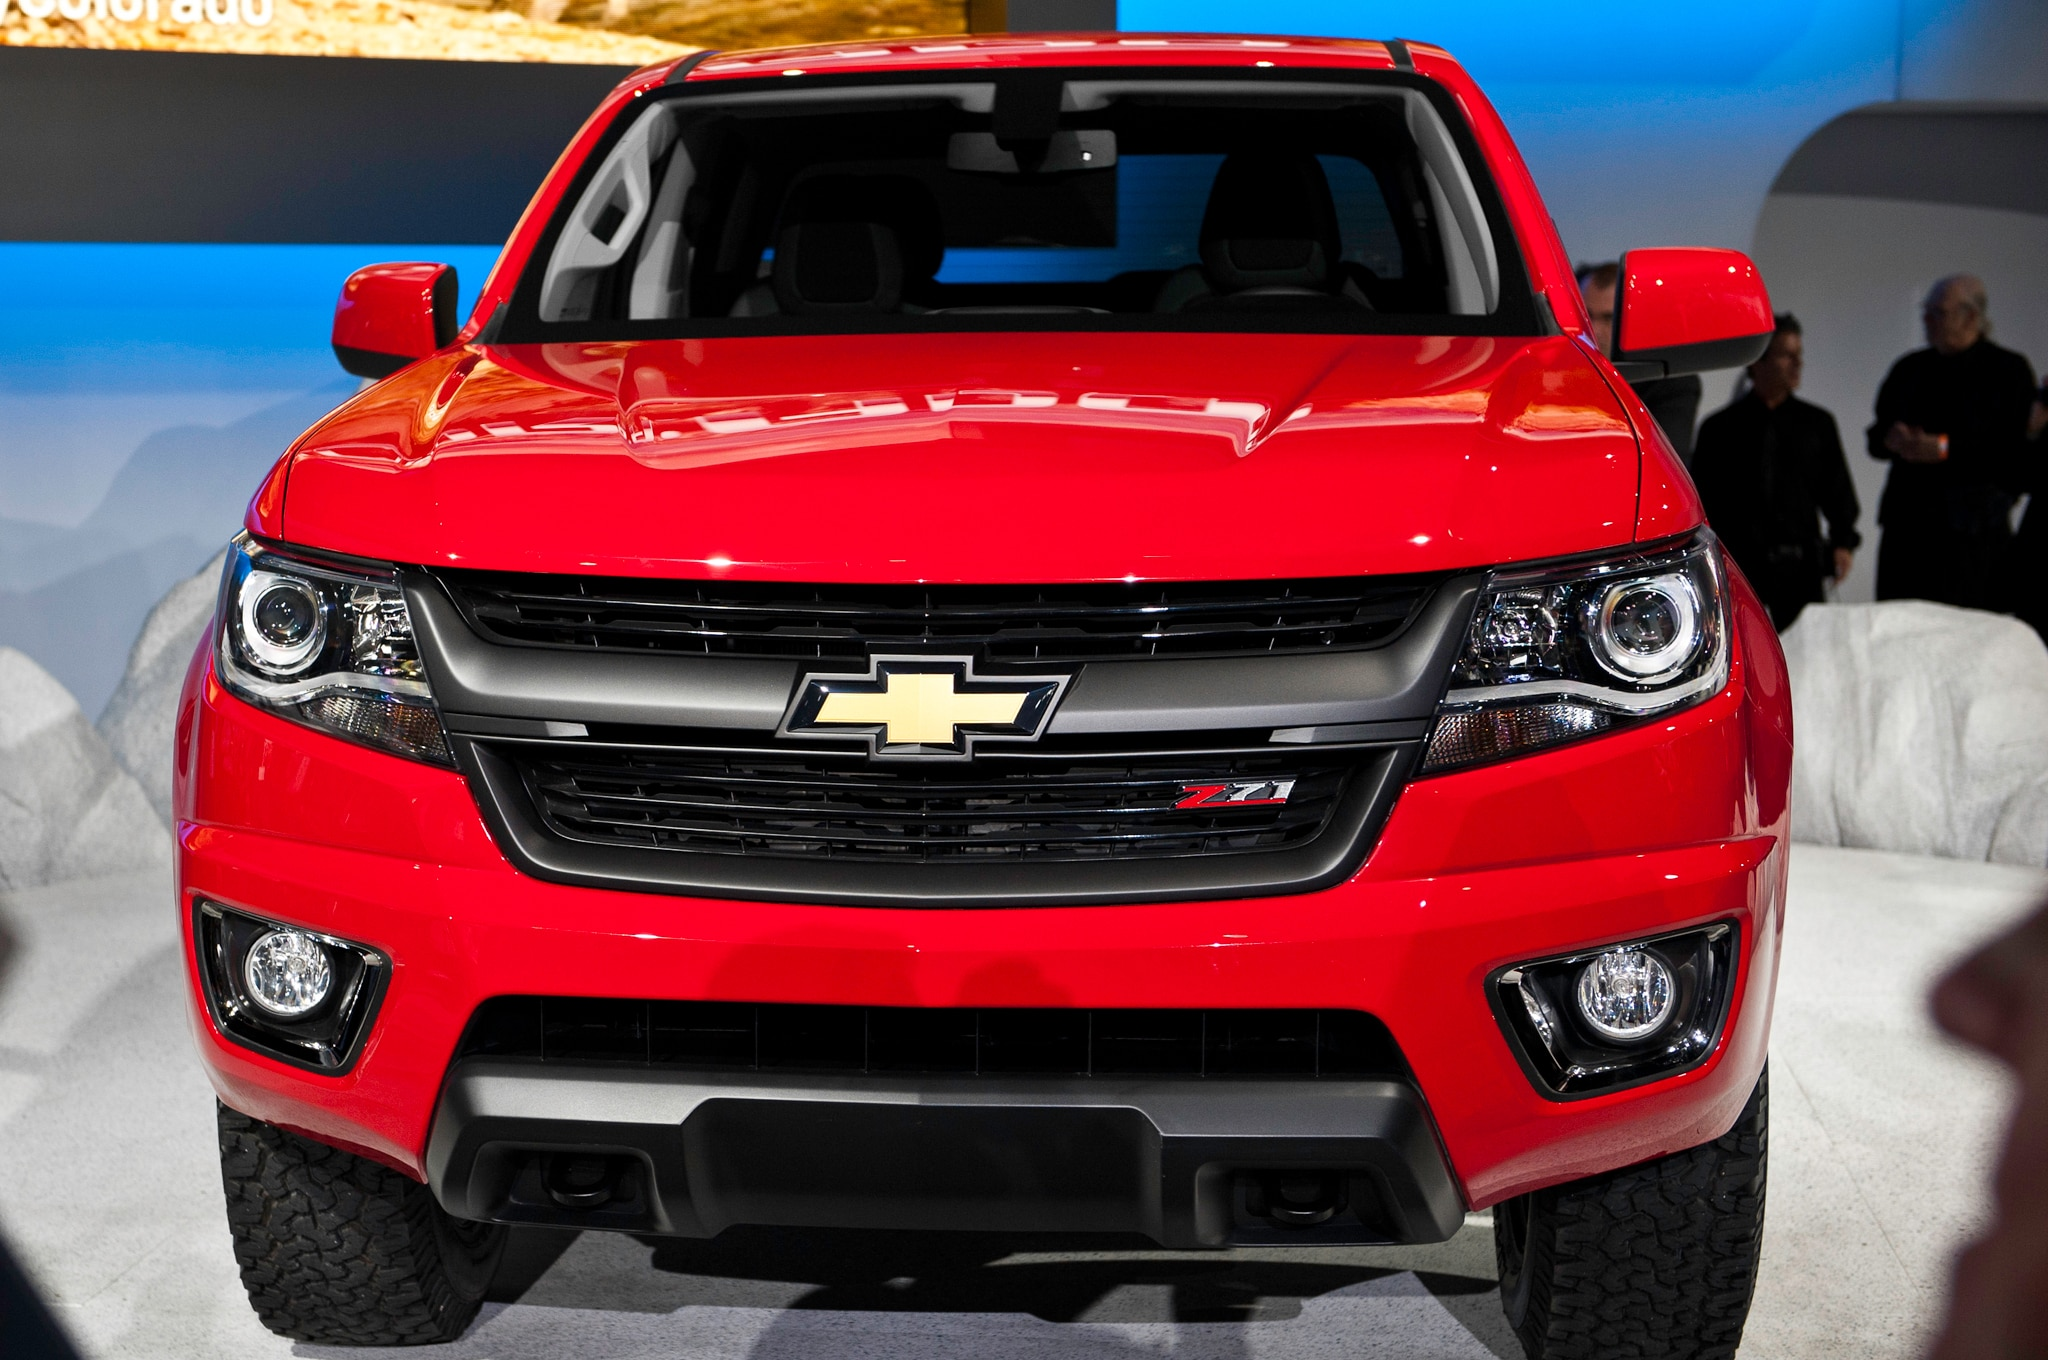 2015 Chevrolet Colorado front grille